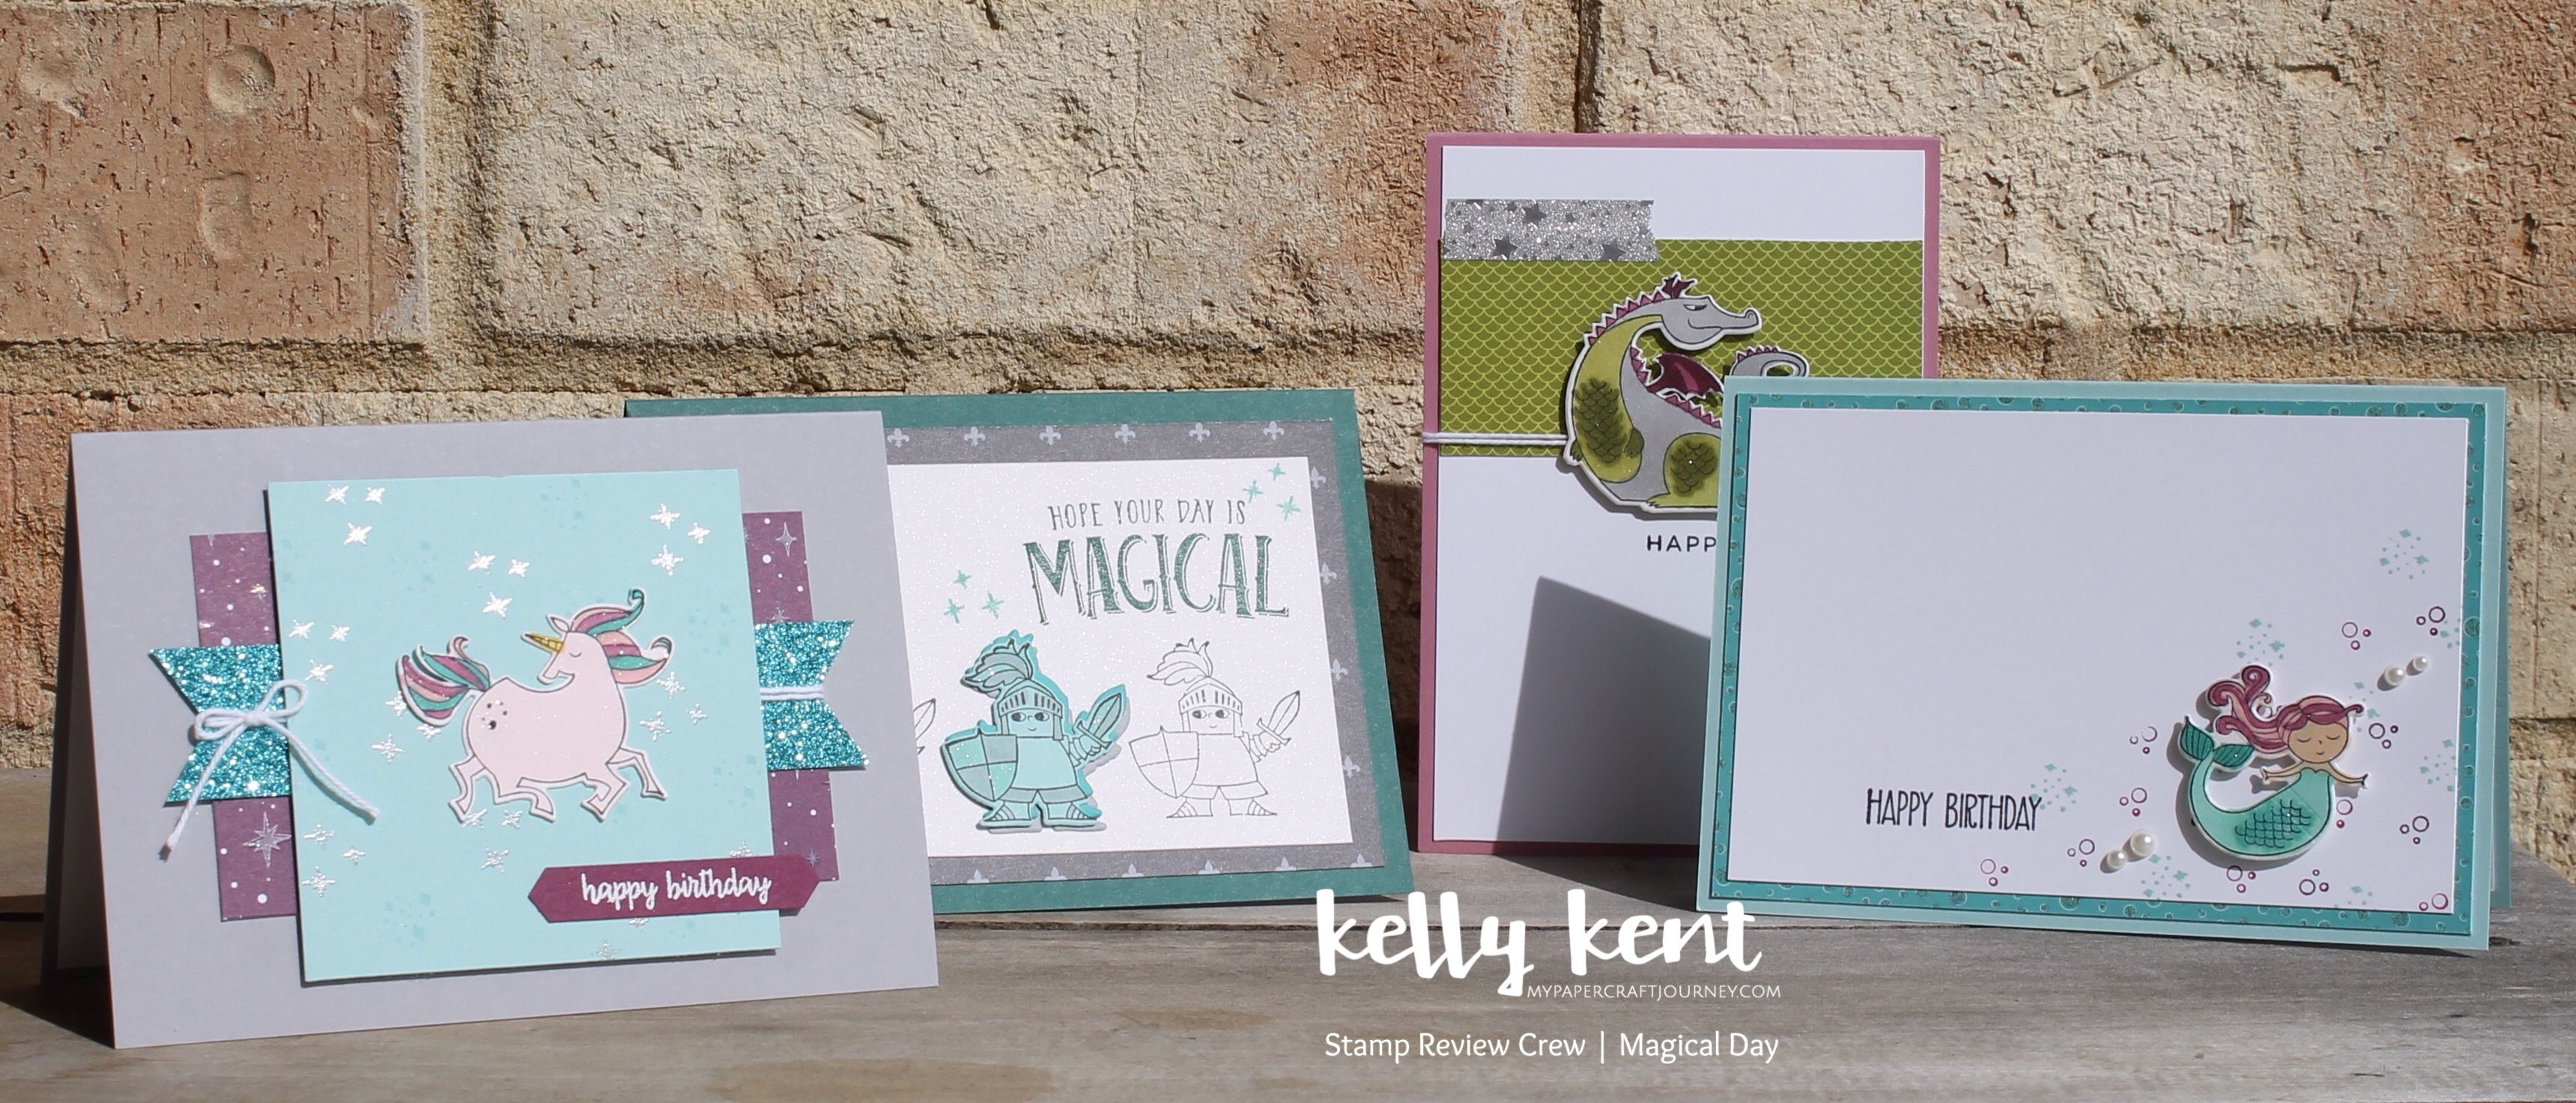 Stamp Review Crew - Magical Day | kelly kent